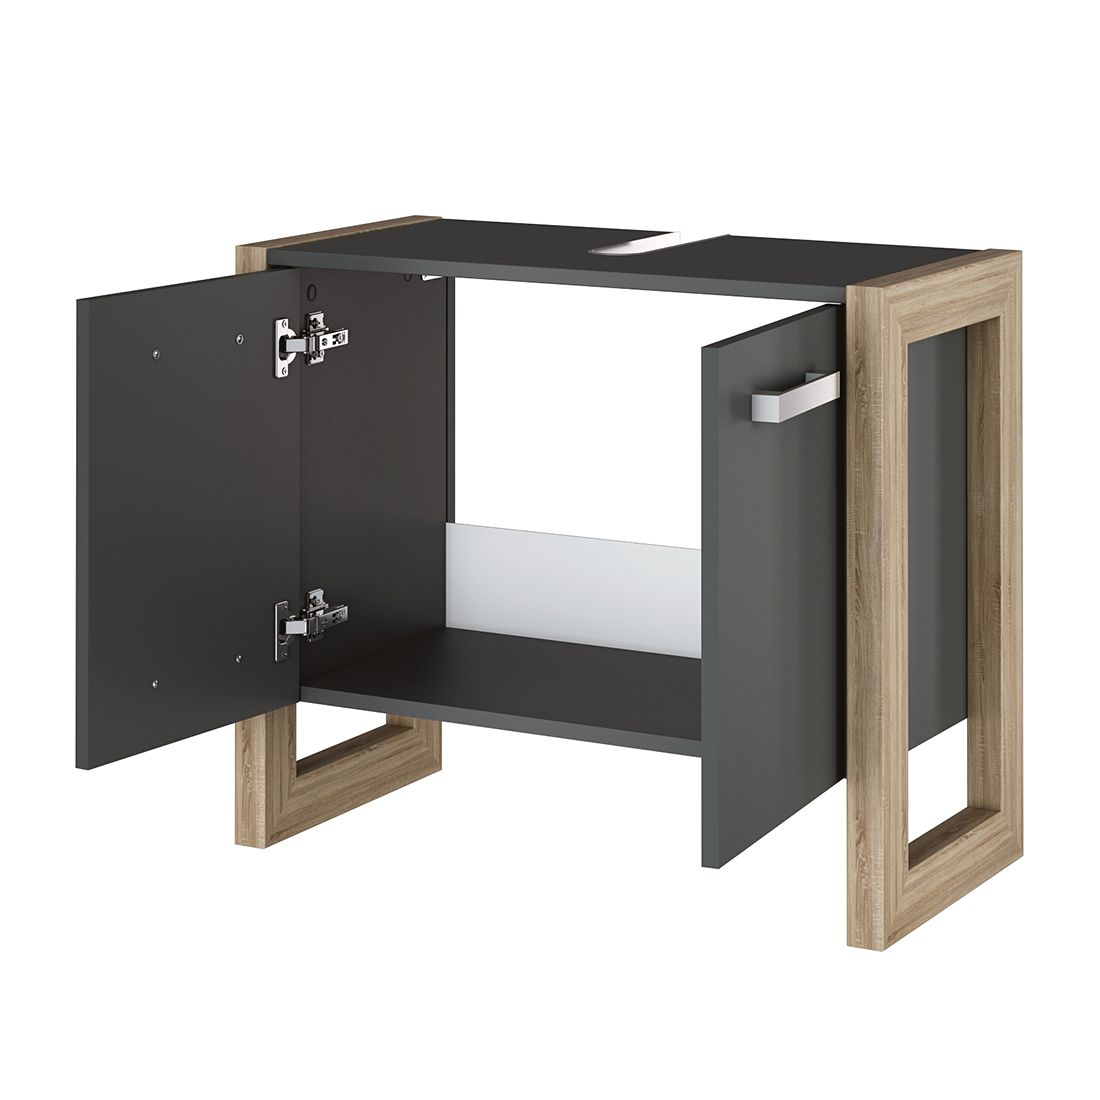 waschbeckenunterschrank eiche dekor badschrank badschrank. Black Bedroom Furniture Sets. Home Design Ideas